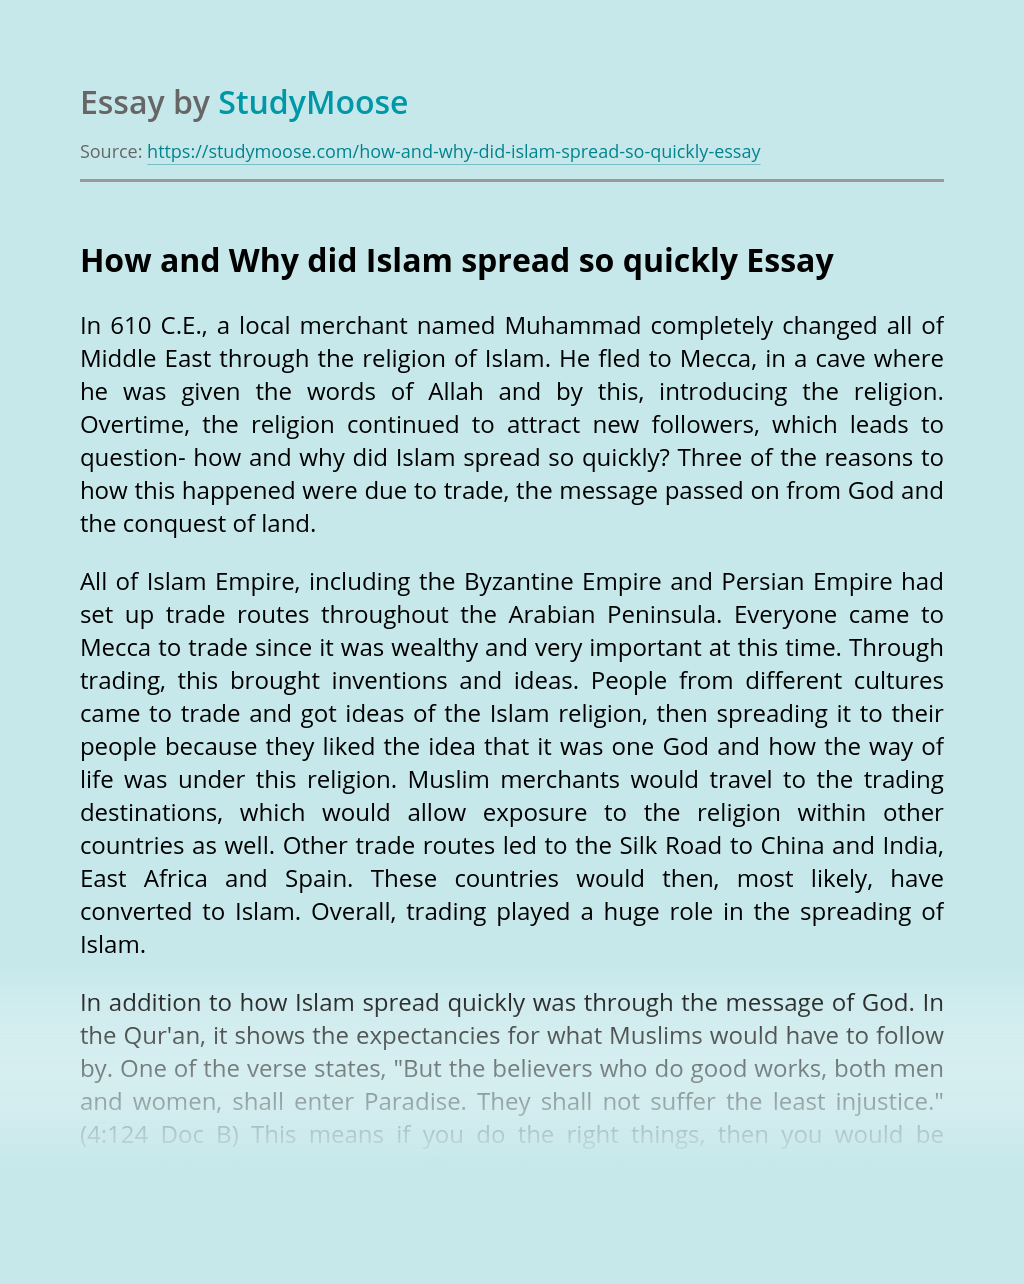 How and Why did Islam spread so quickly